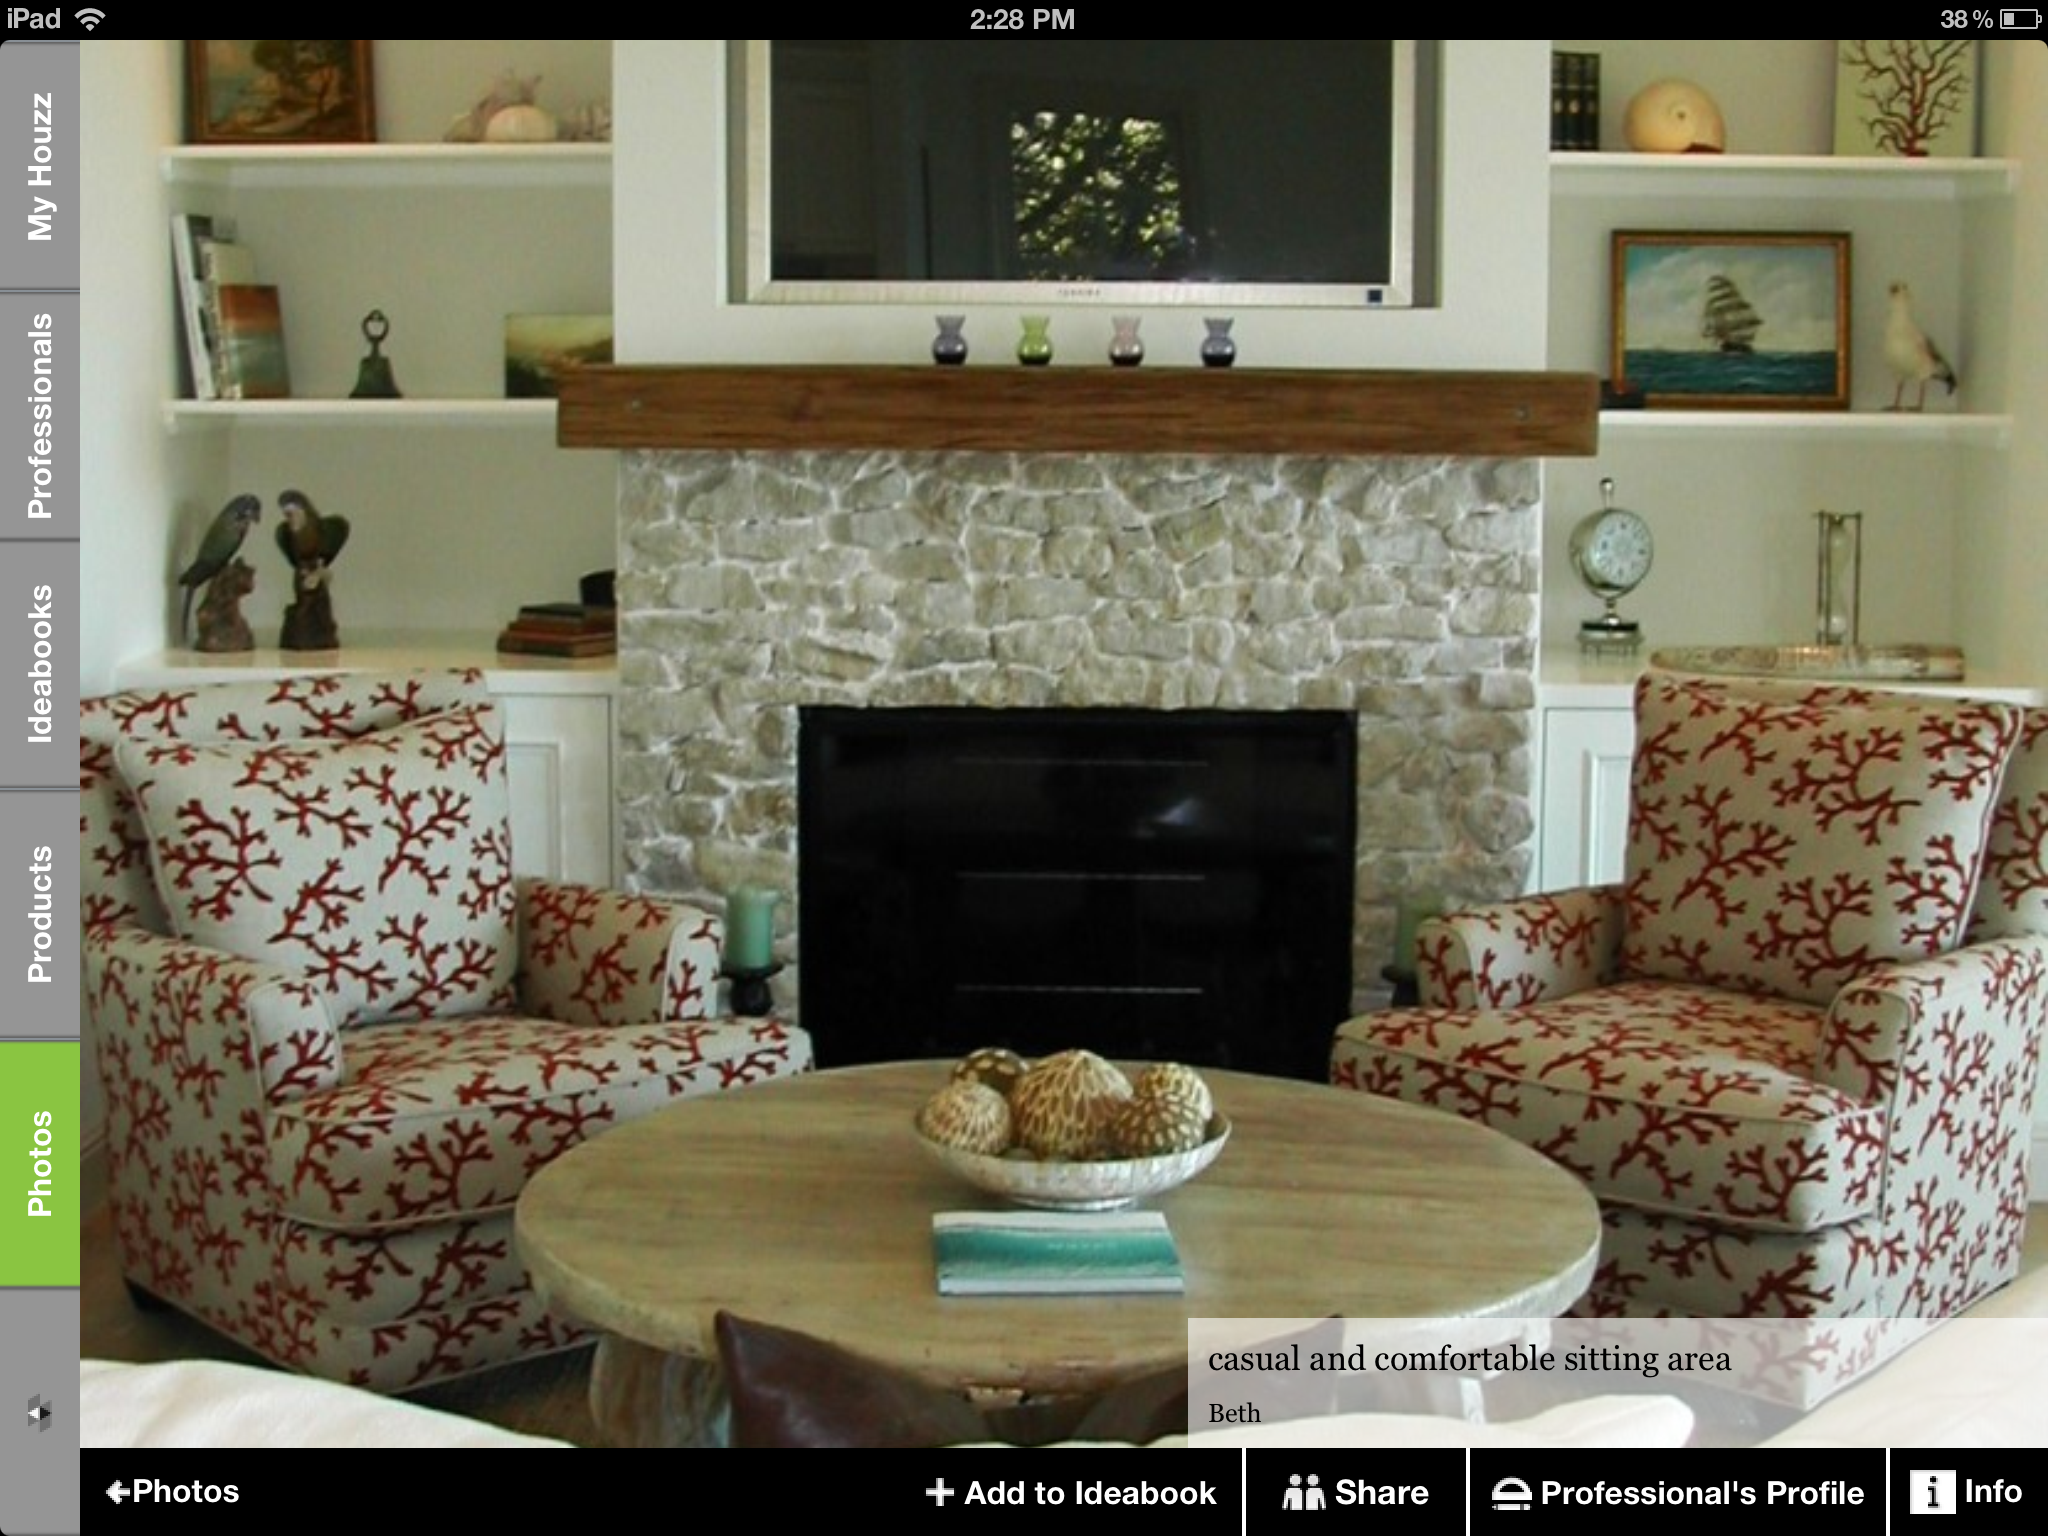 Like the built-ins, chairs, coffee table, set-up